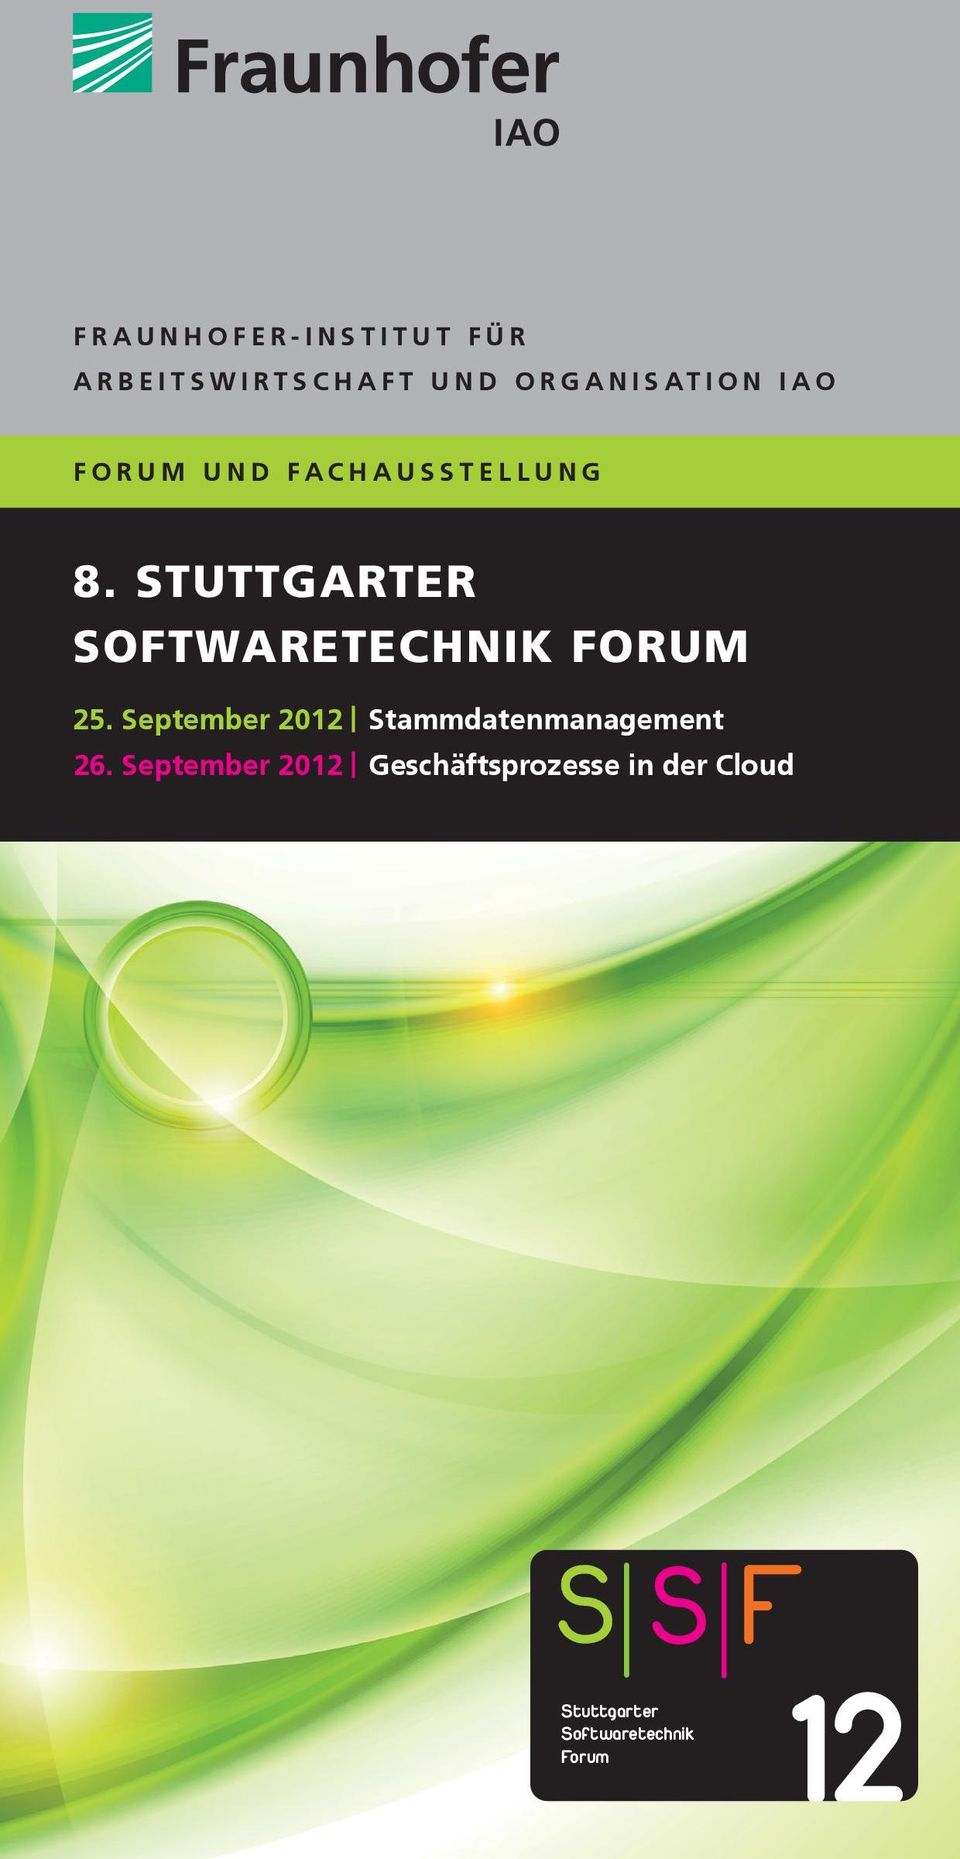 STUTTGARTER SOFTWARETECHNIK FORUM 25.